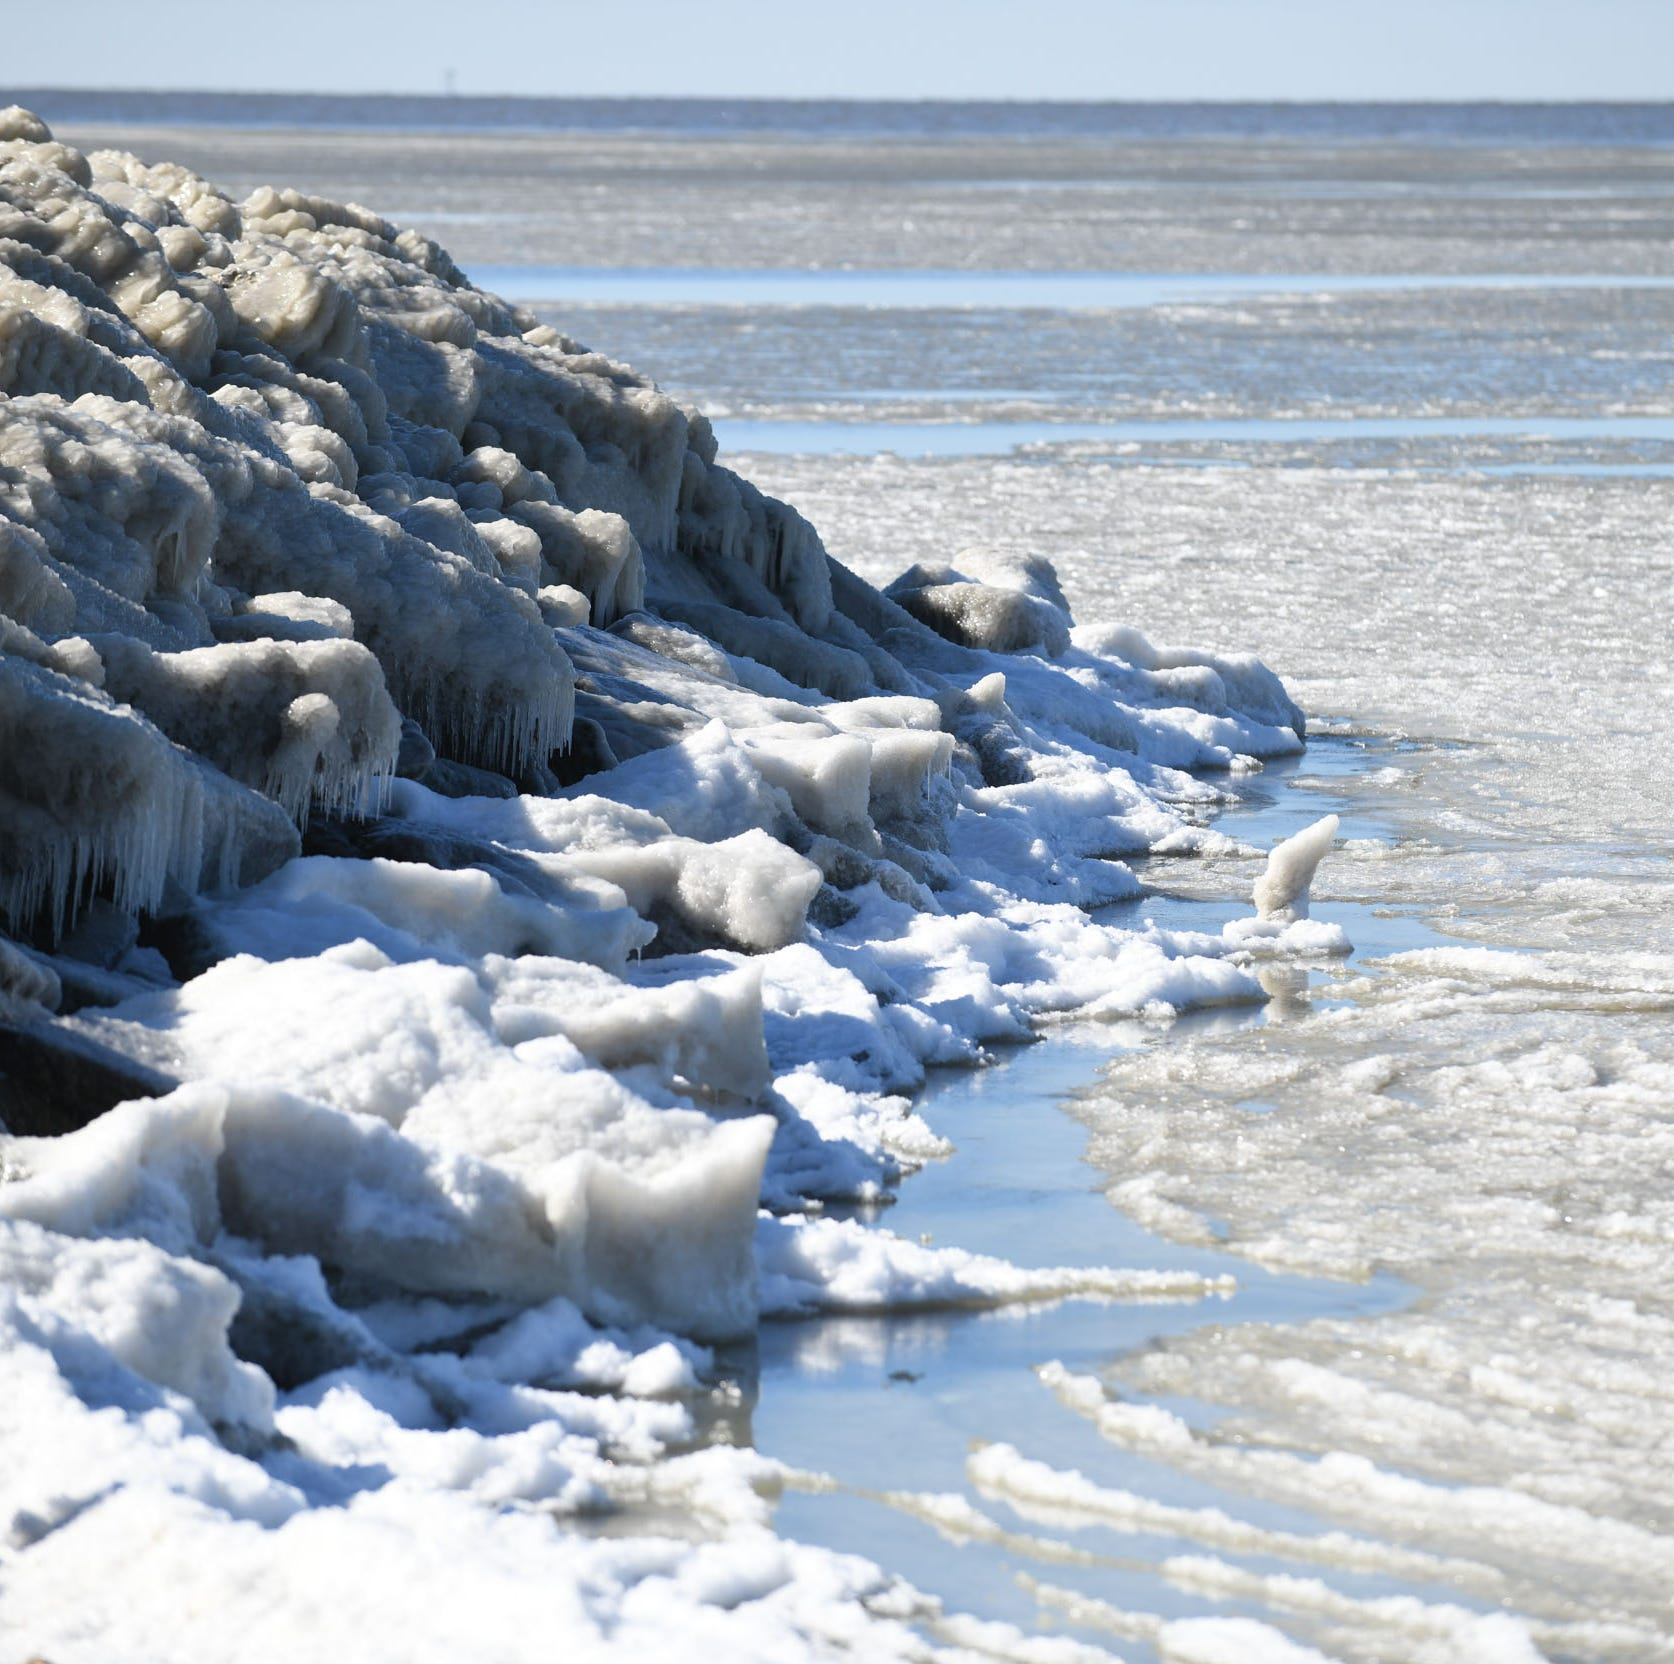 Rapid freeze brings stunning, unique ice formations to Crisfield